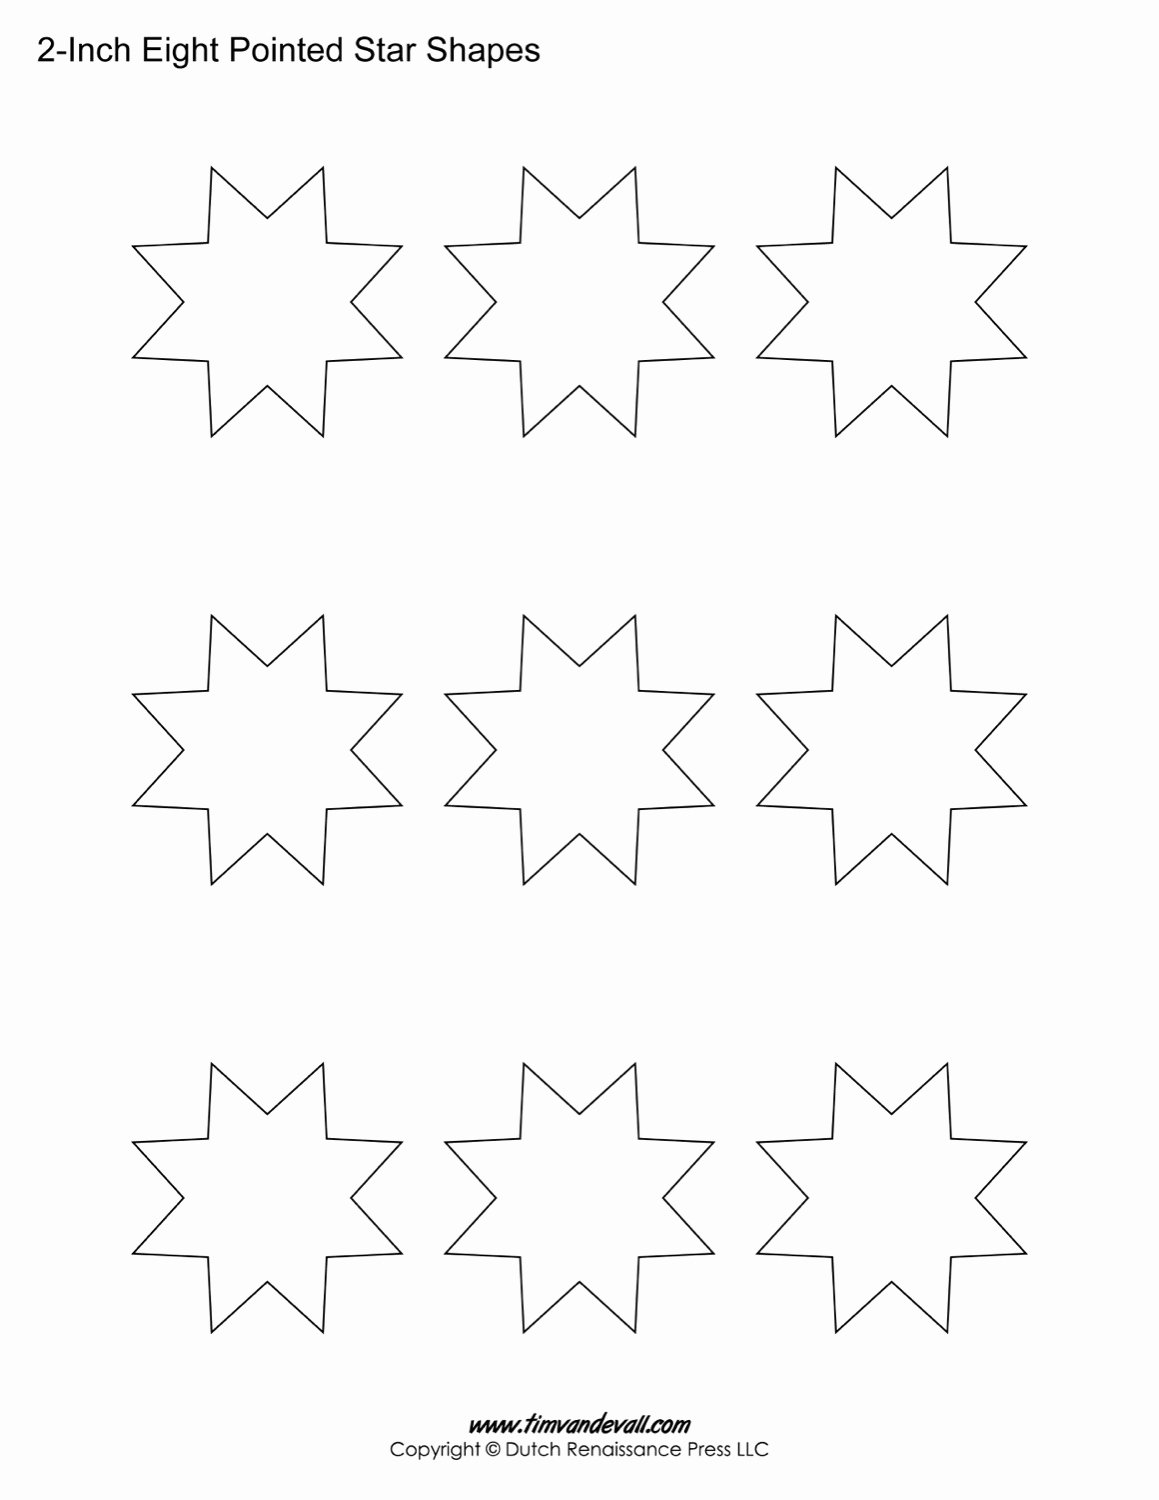 8 Point Star Template Beautiful Free Eight Pointed Star Shapes